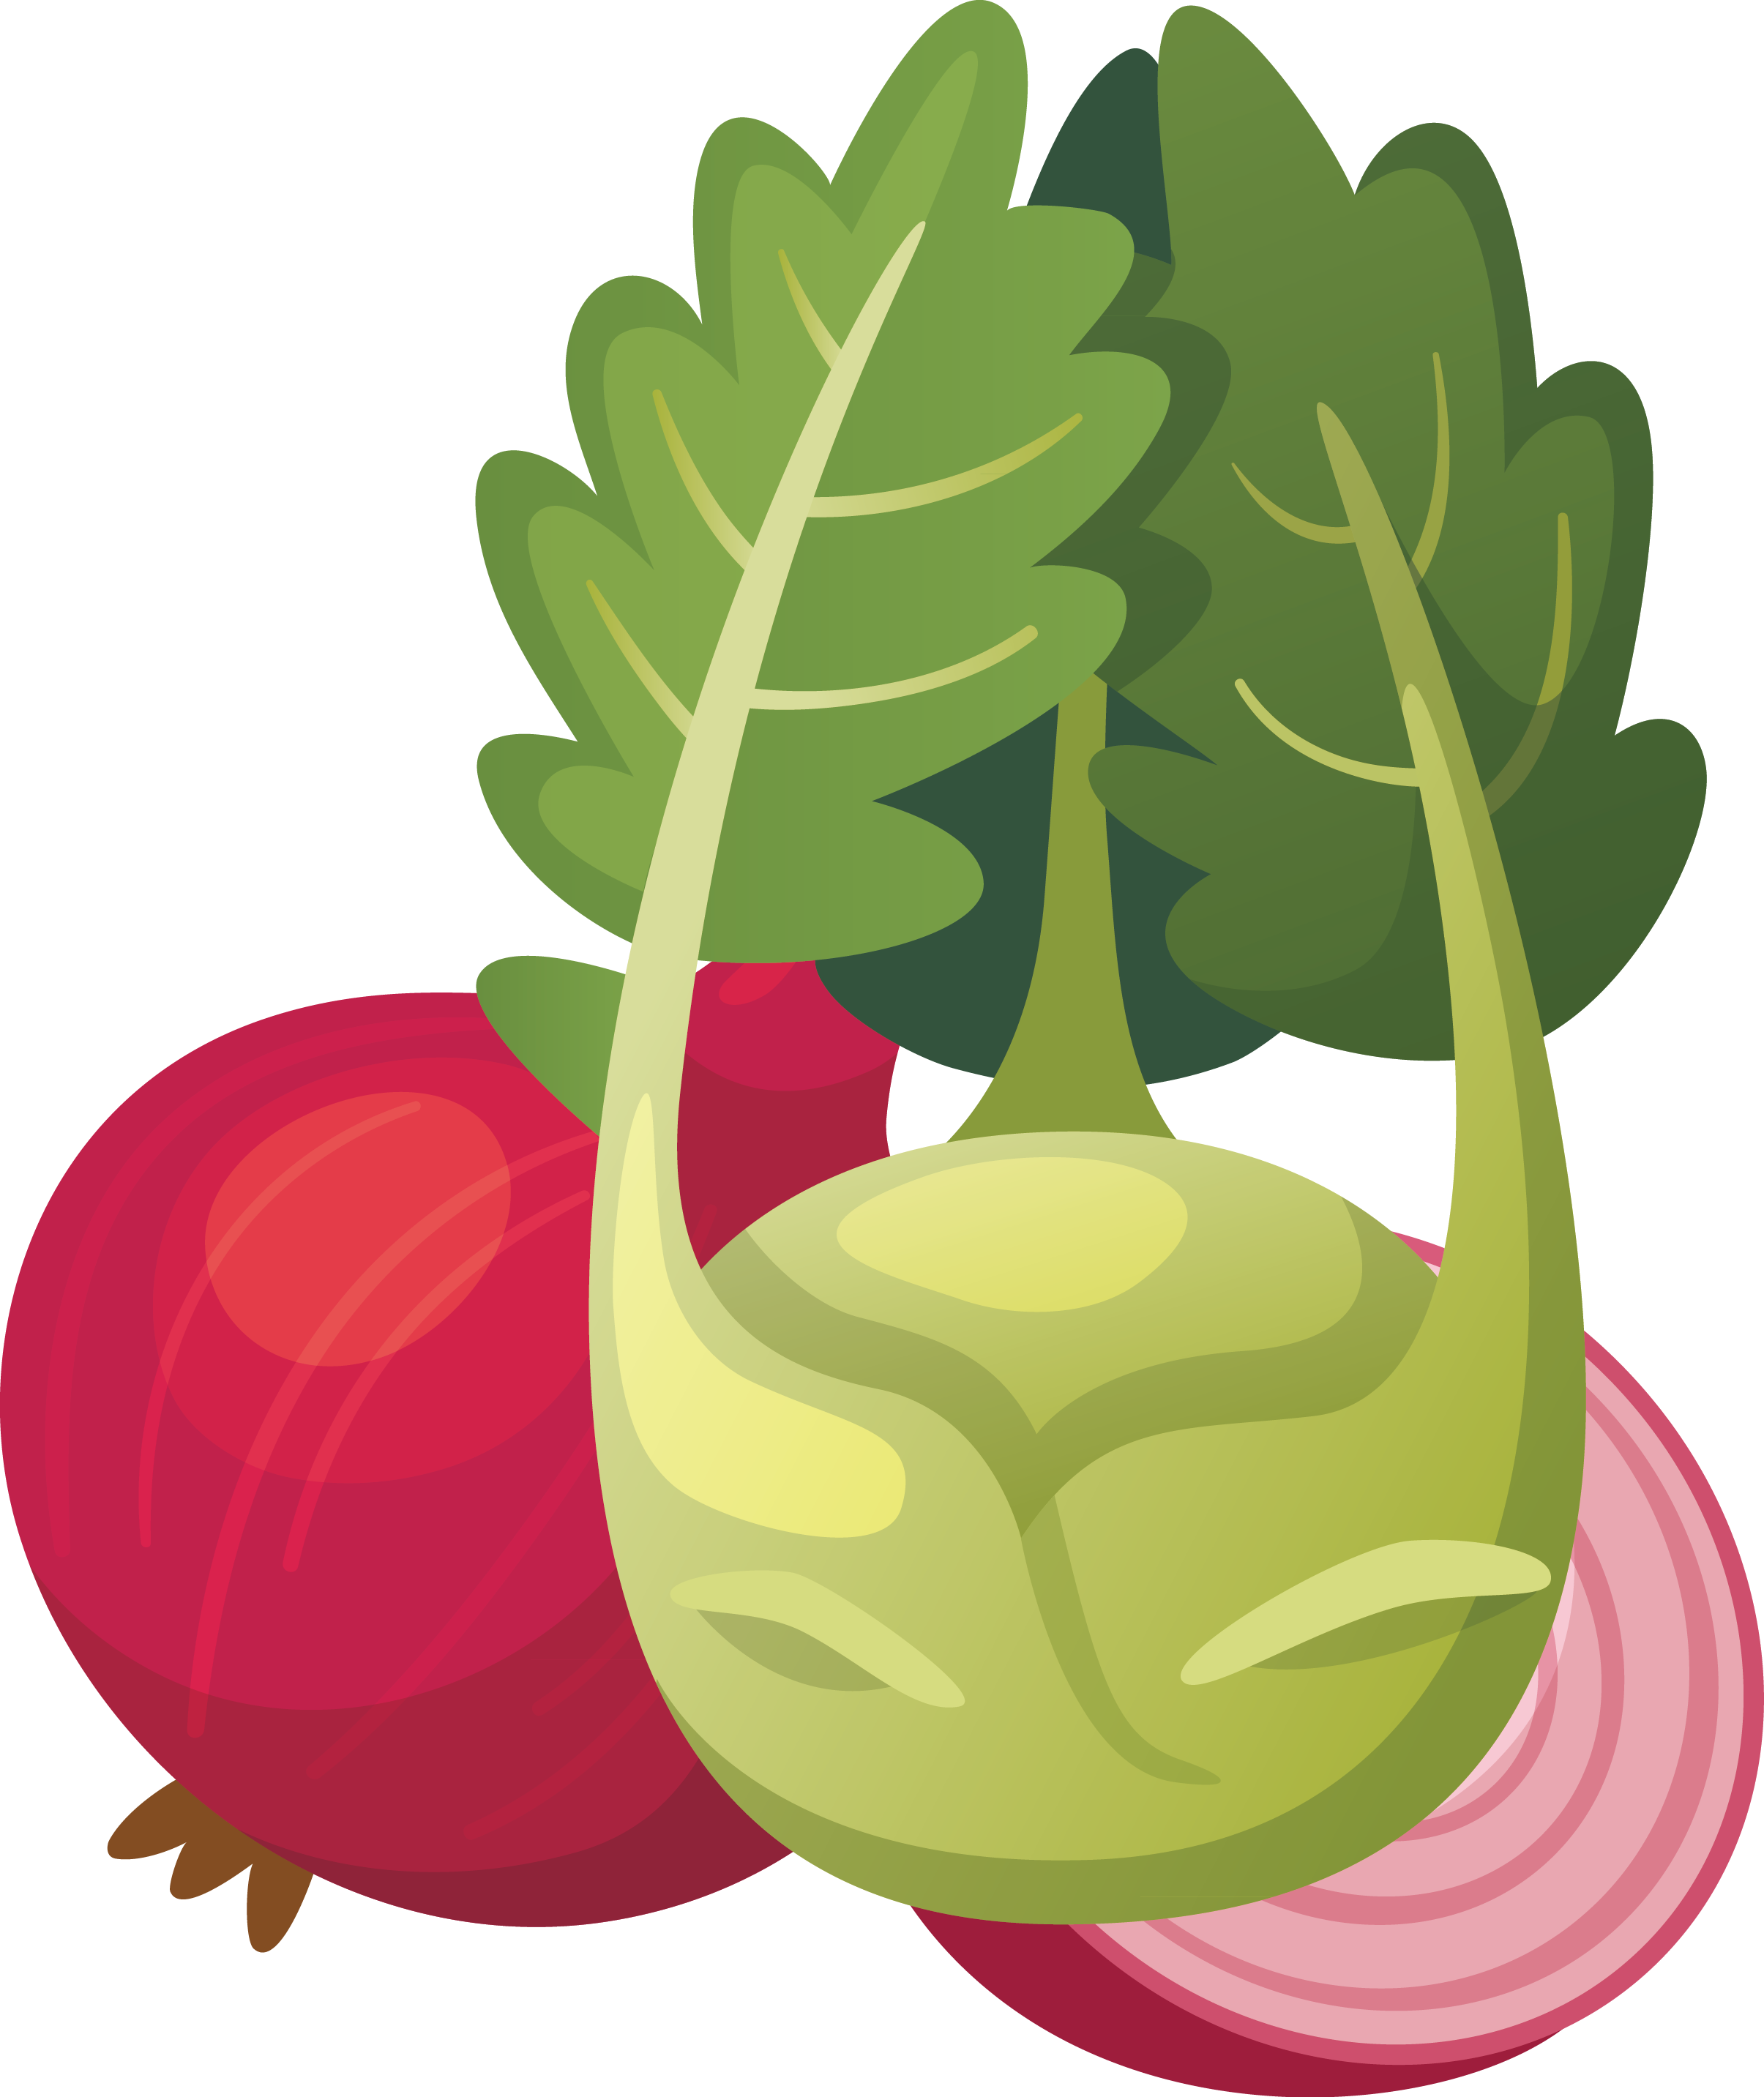 Radish vector turnip. Fruit vegetable gouache painting